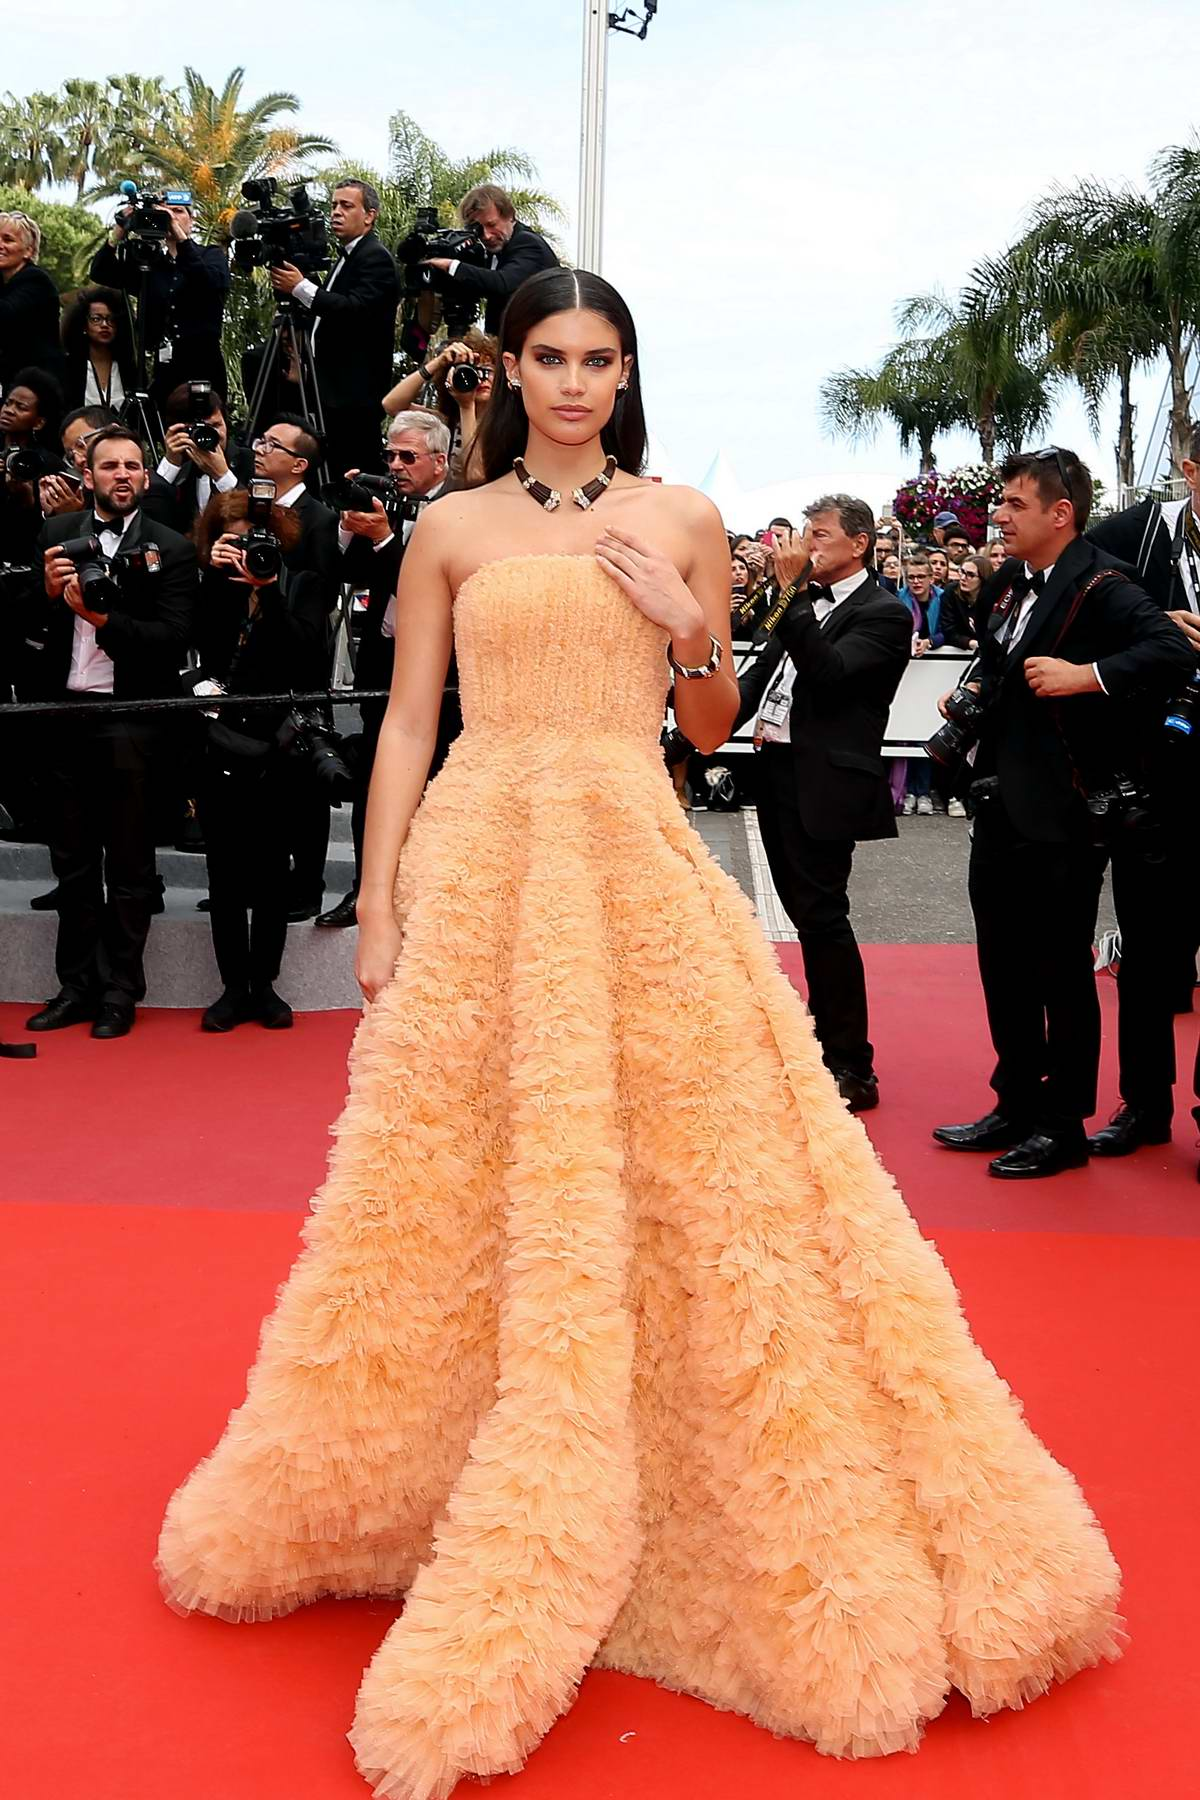 Sara Sampaio attends the screening of 'Once Upon A Time In Hollywood' during the 72nd annual Cannes Film Festival in Cannes, France